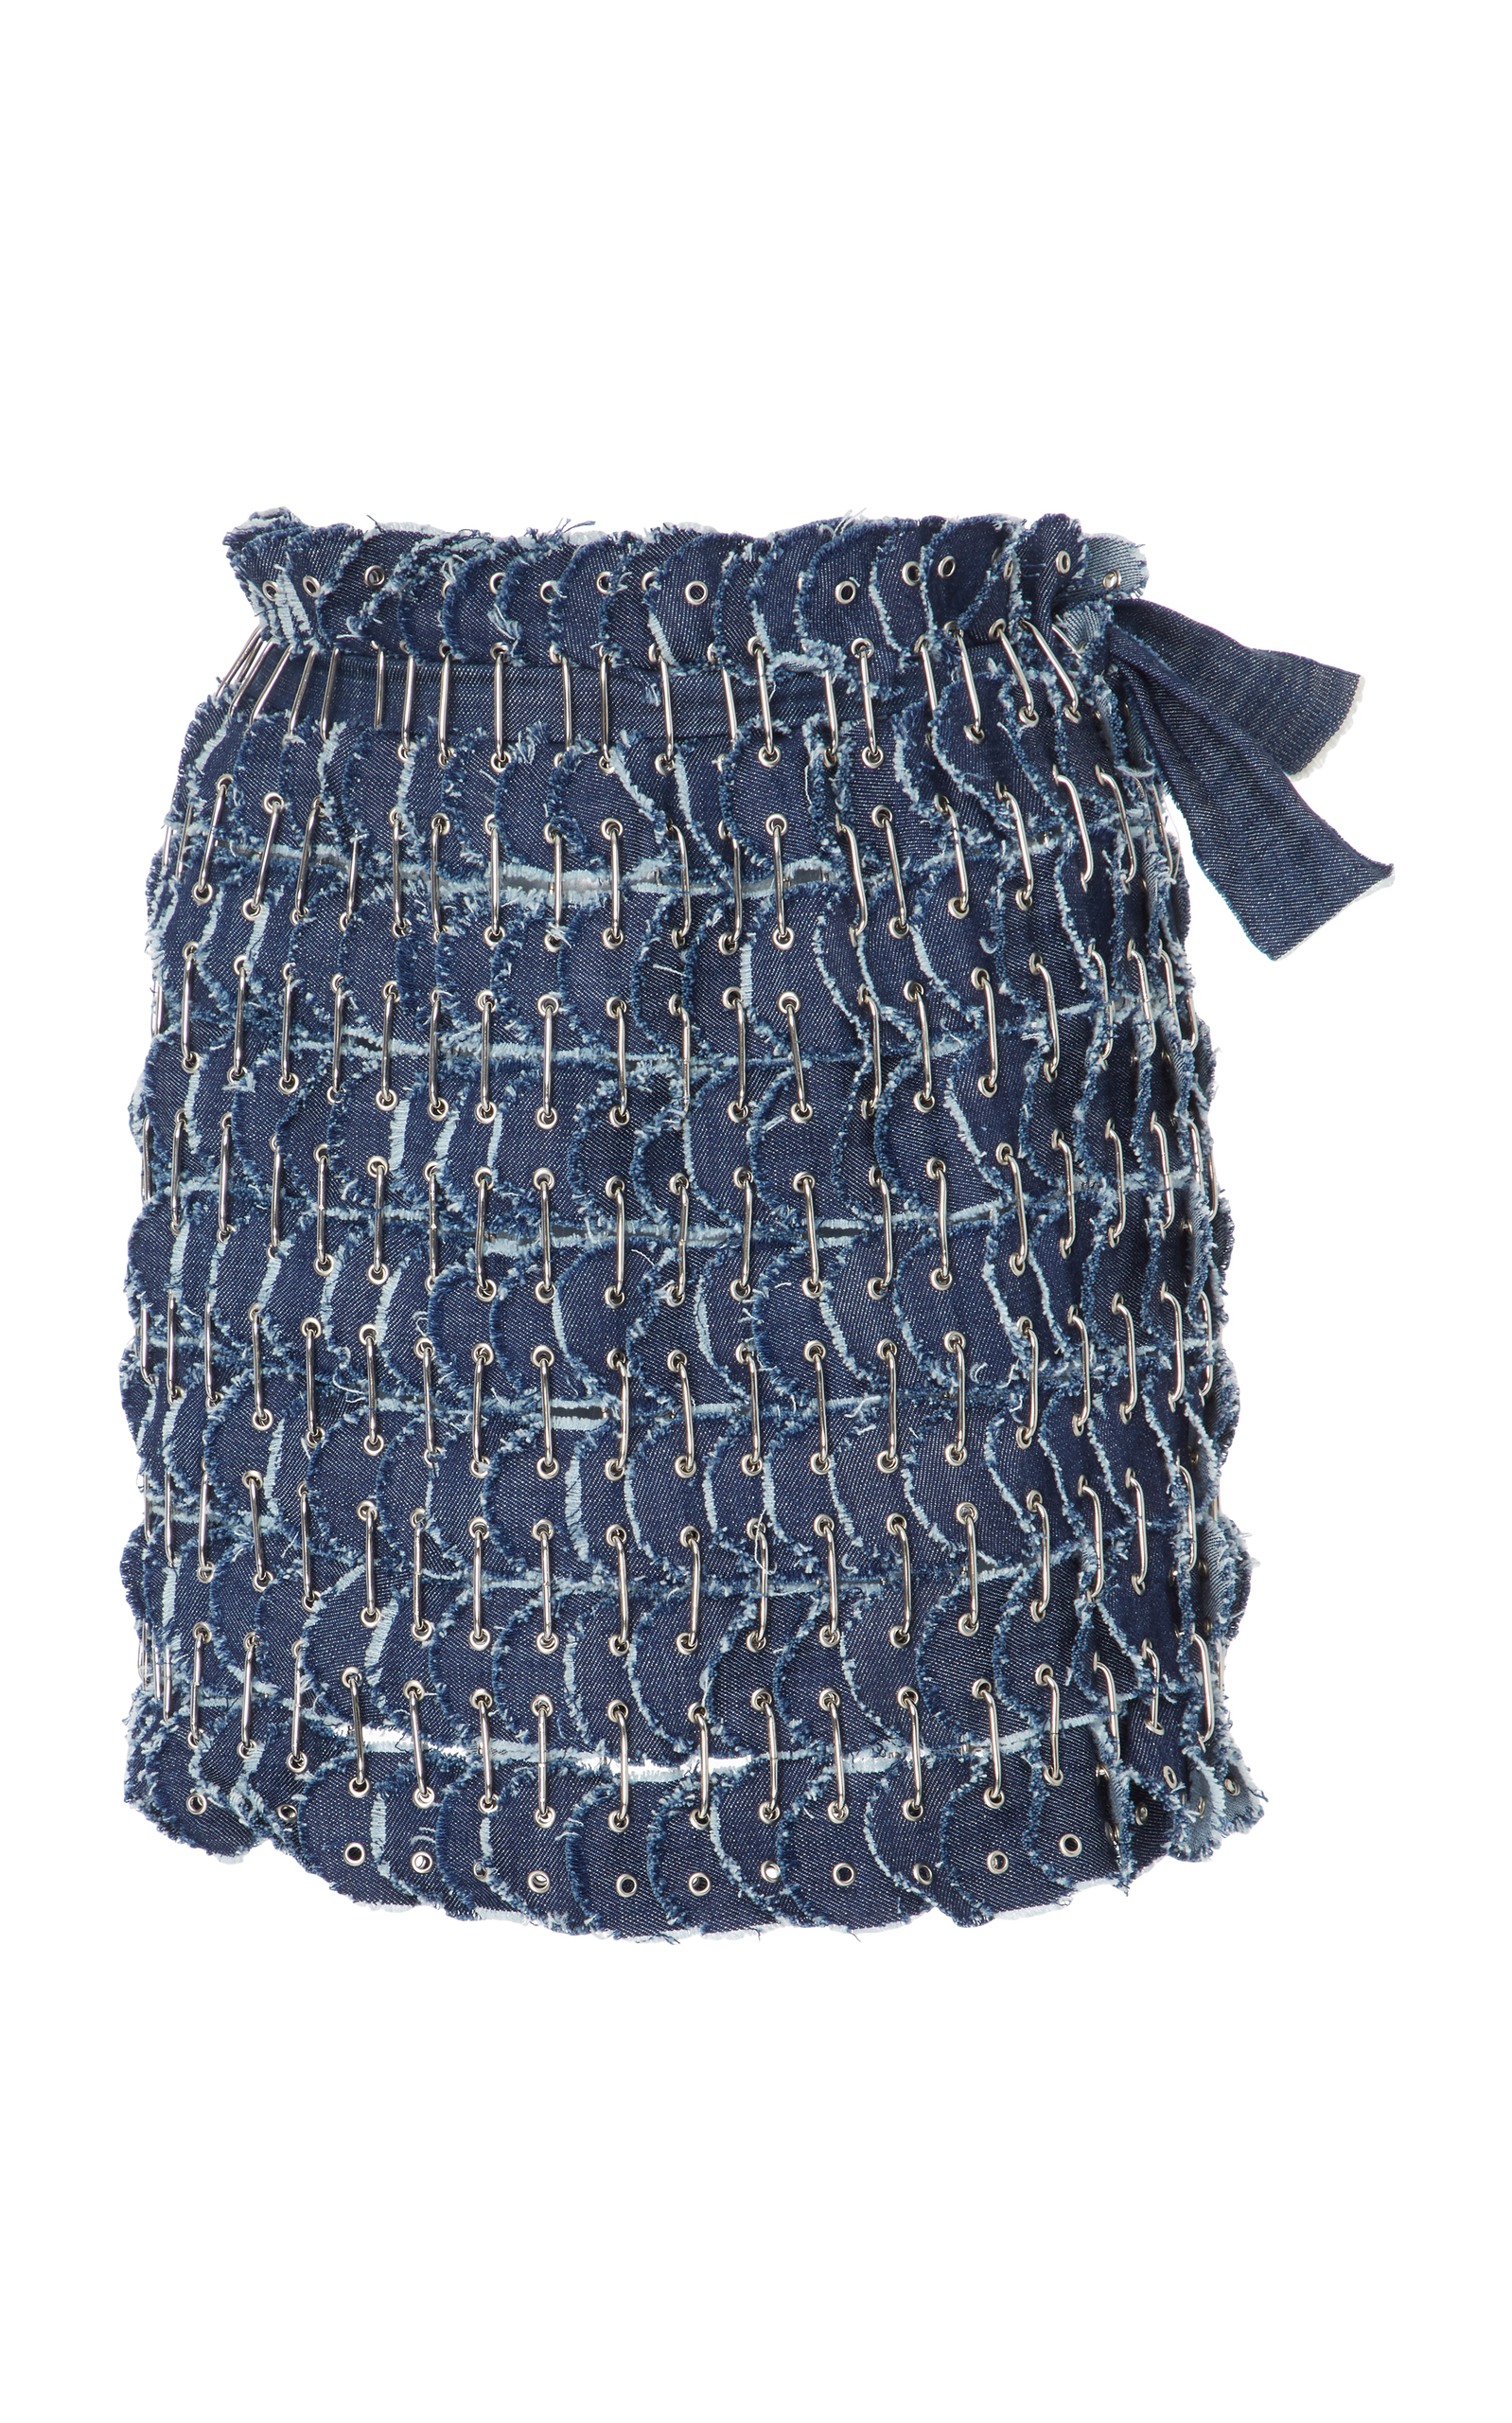 FANNIE SCHIAVONI Denim Skirt in Navy